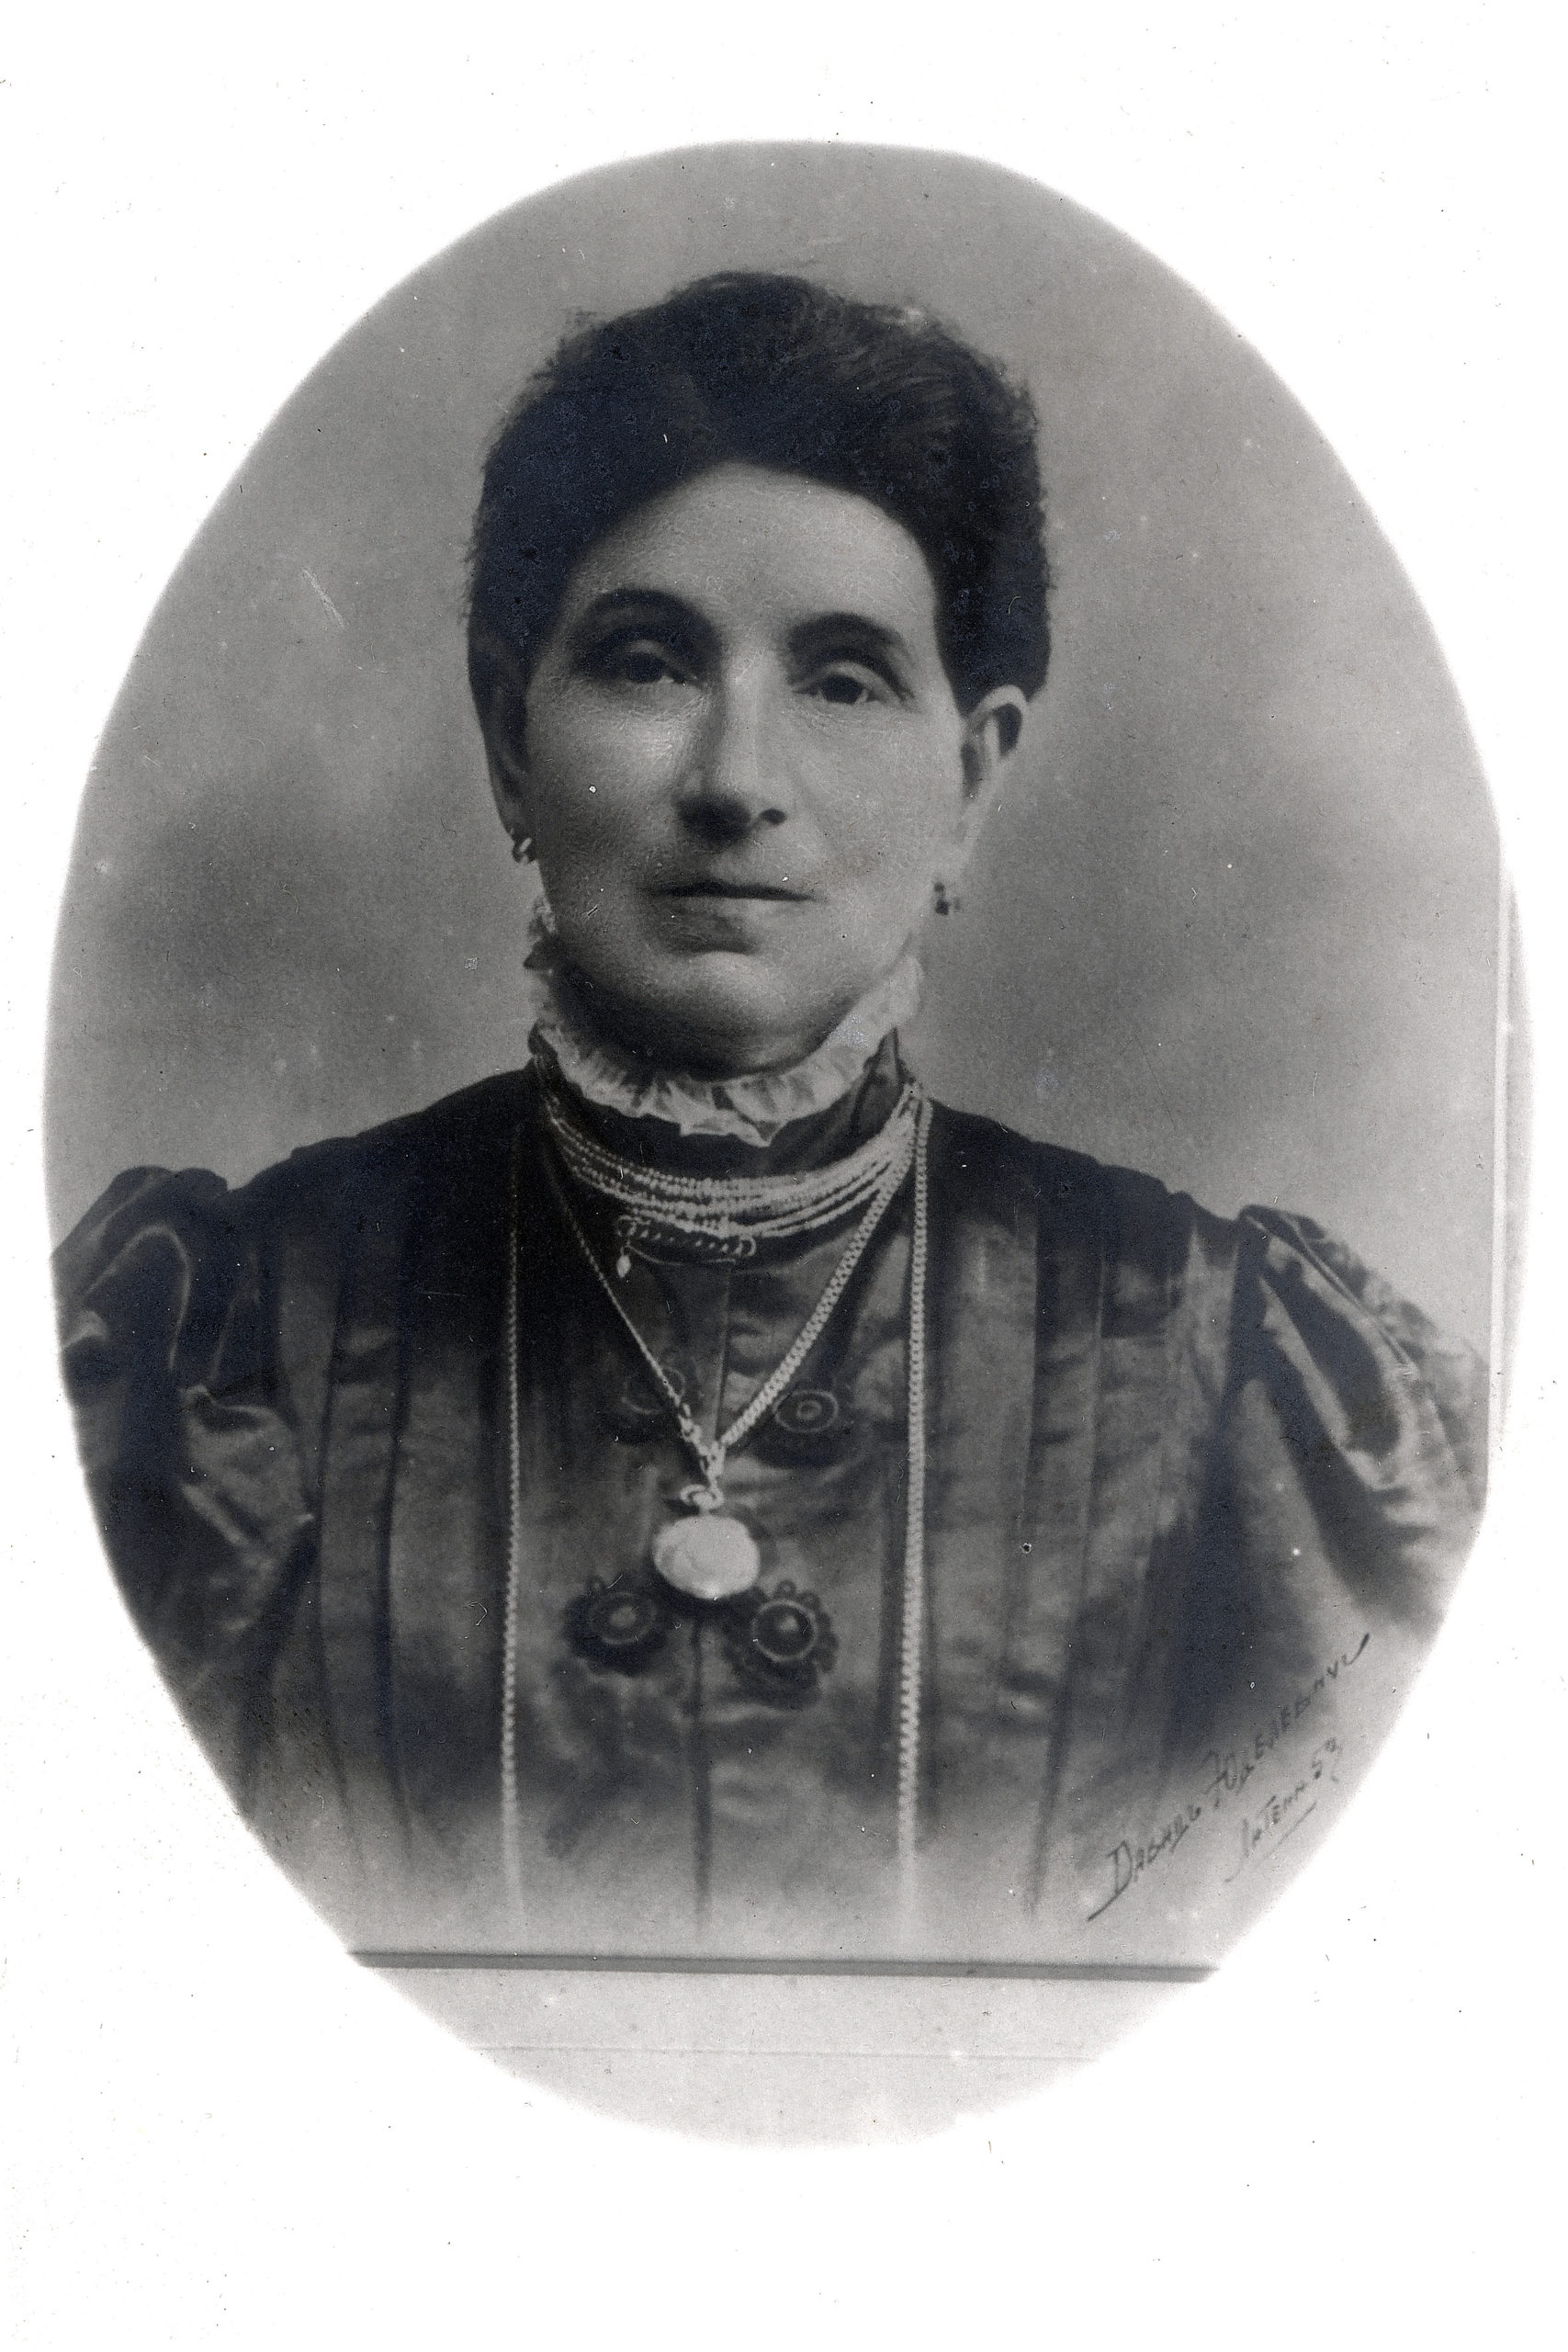 Mark Epstein's paternal grandmother